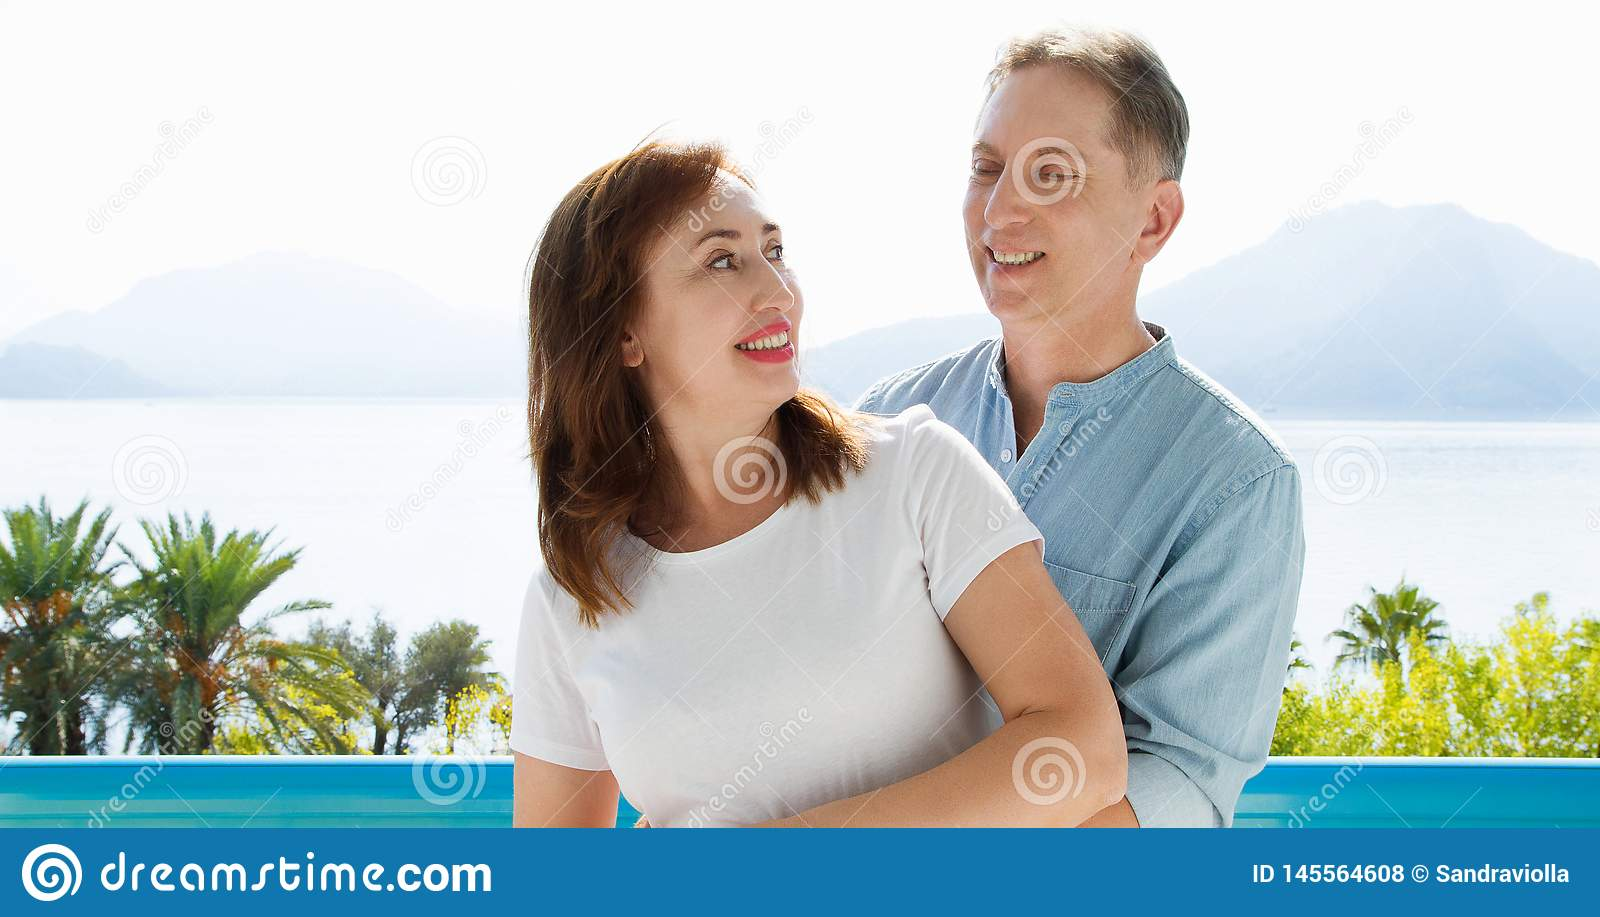 Summer family vacation. Happy middle aged couple having fun on travel holidays weekend. Sea and beach background. Copy space